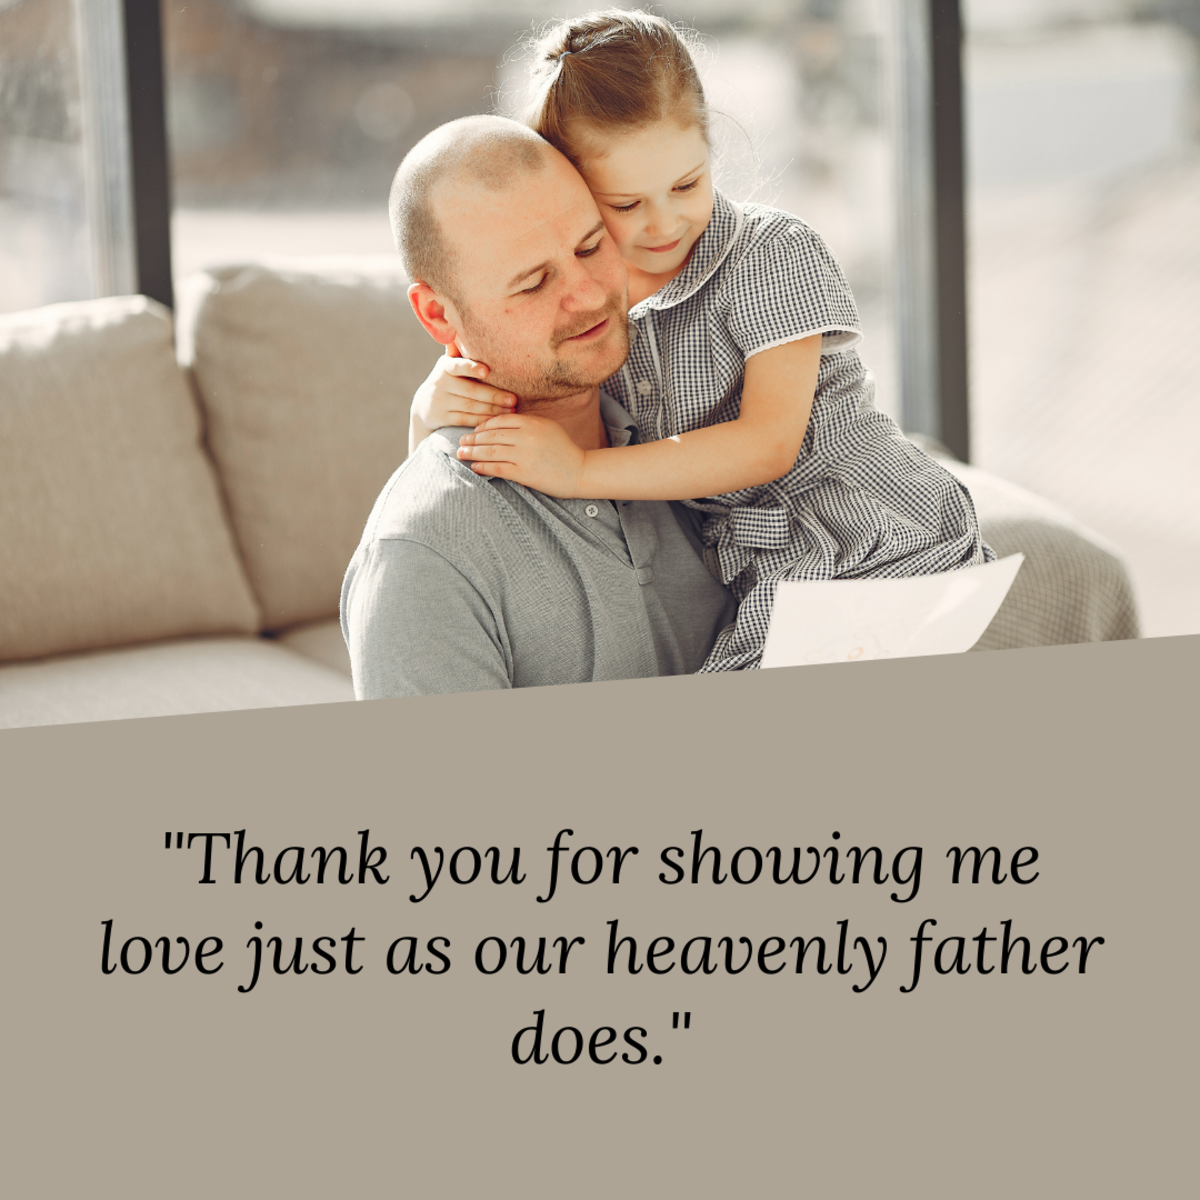 If your father is Christian, he may appreciate a sentimental religious message for Father's Day.